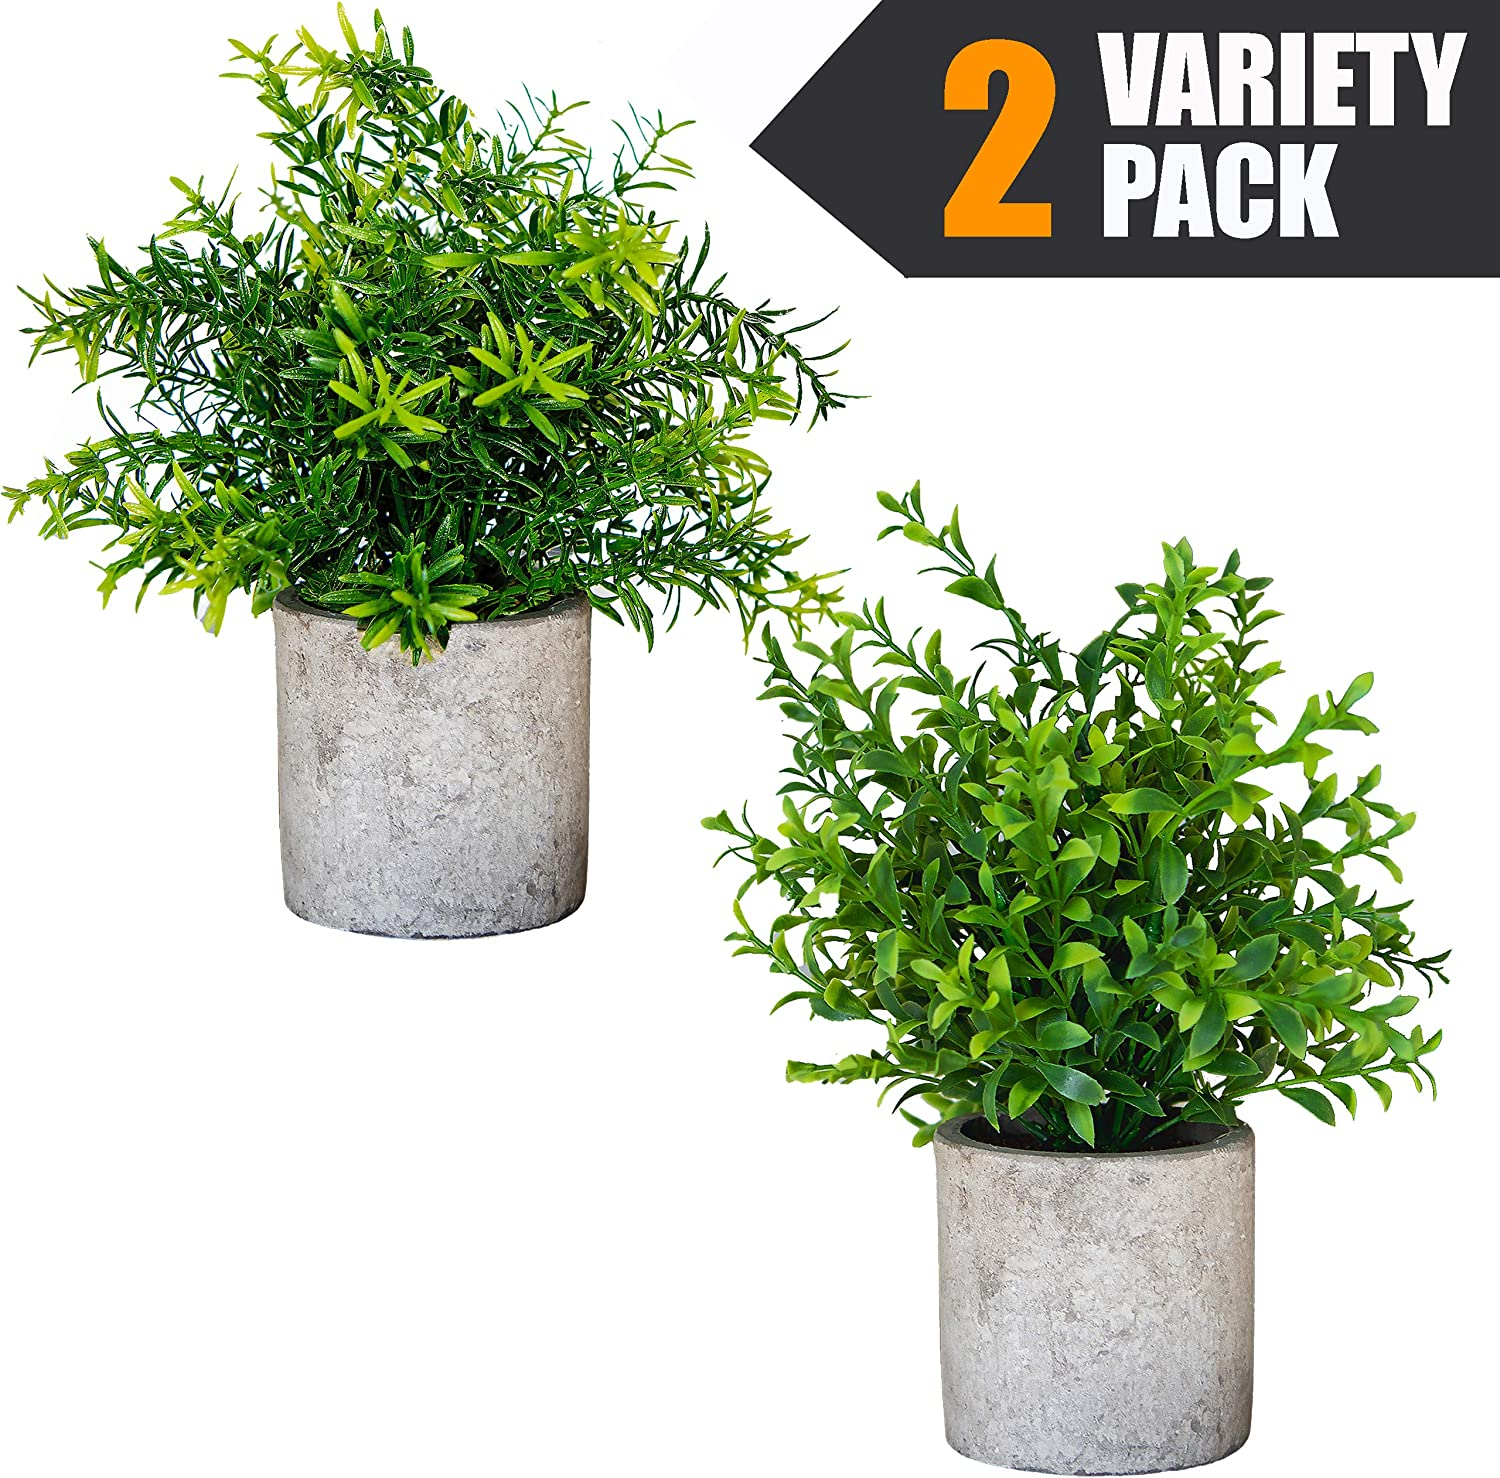 Small Artificial Plants in Pots For Home Decor Fake Faux Feaux Face Decorative Plant Decoration Arrangements Mini Artificial Potted Plants Greenery Decor Shelf Desk Office (Green Rosemary & Bamboo, 2)